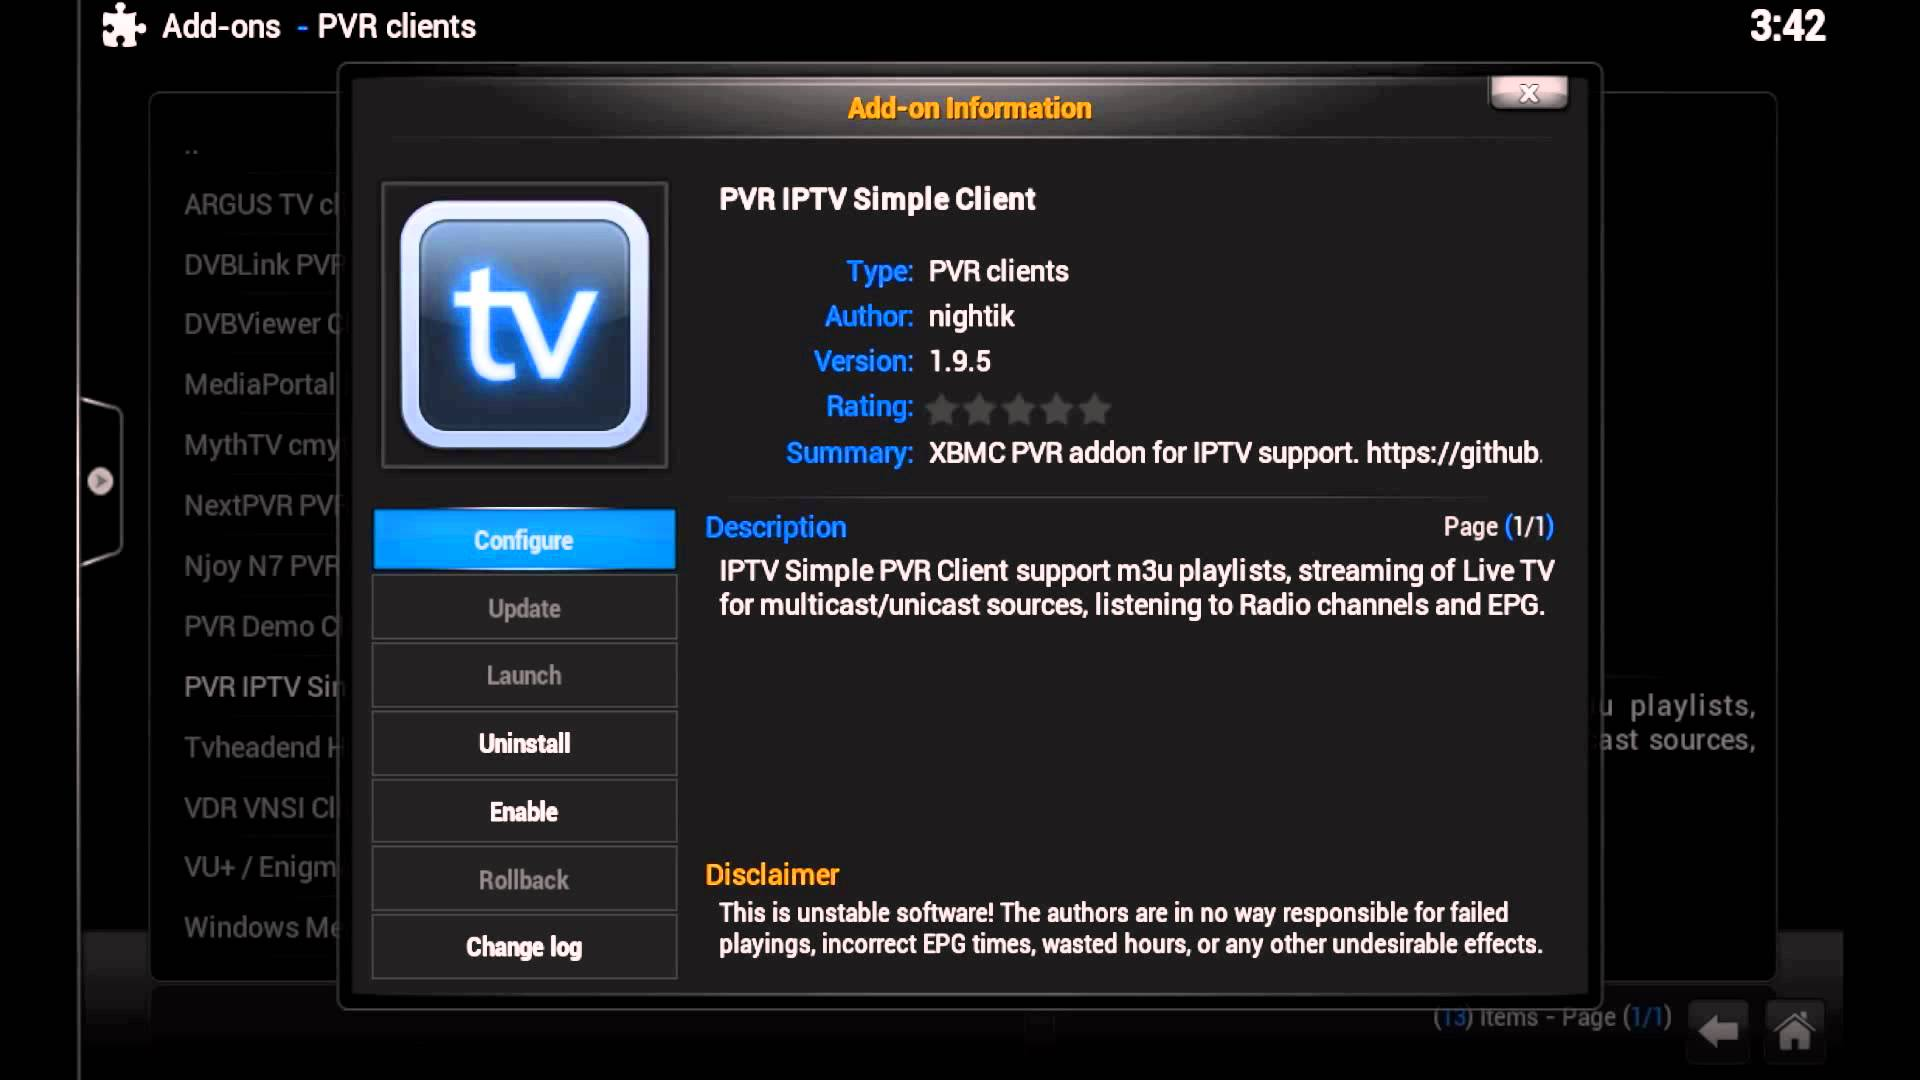 92 News Hd Tv Live Watch Channel 92 News Live Streaming